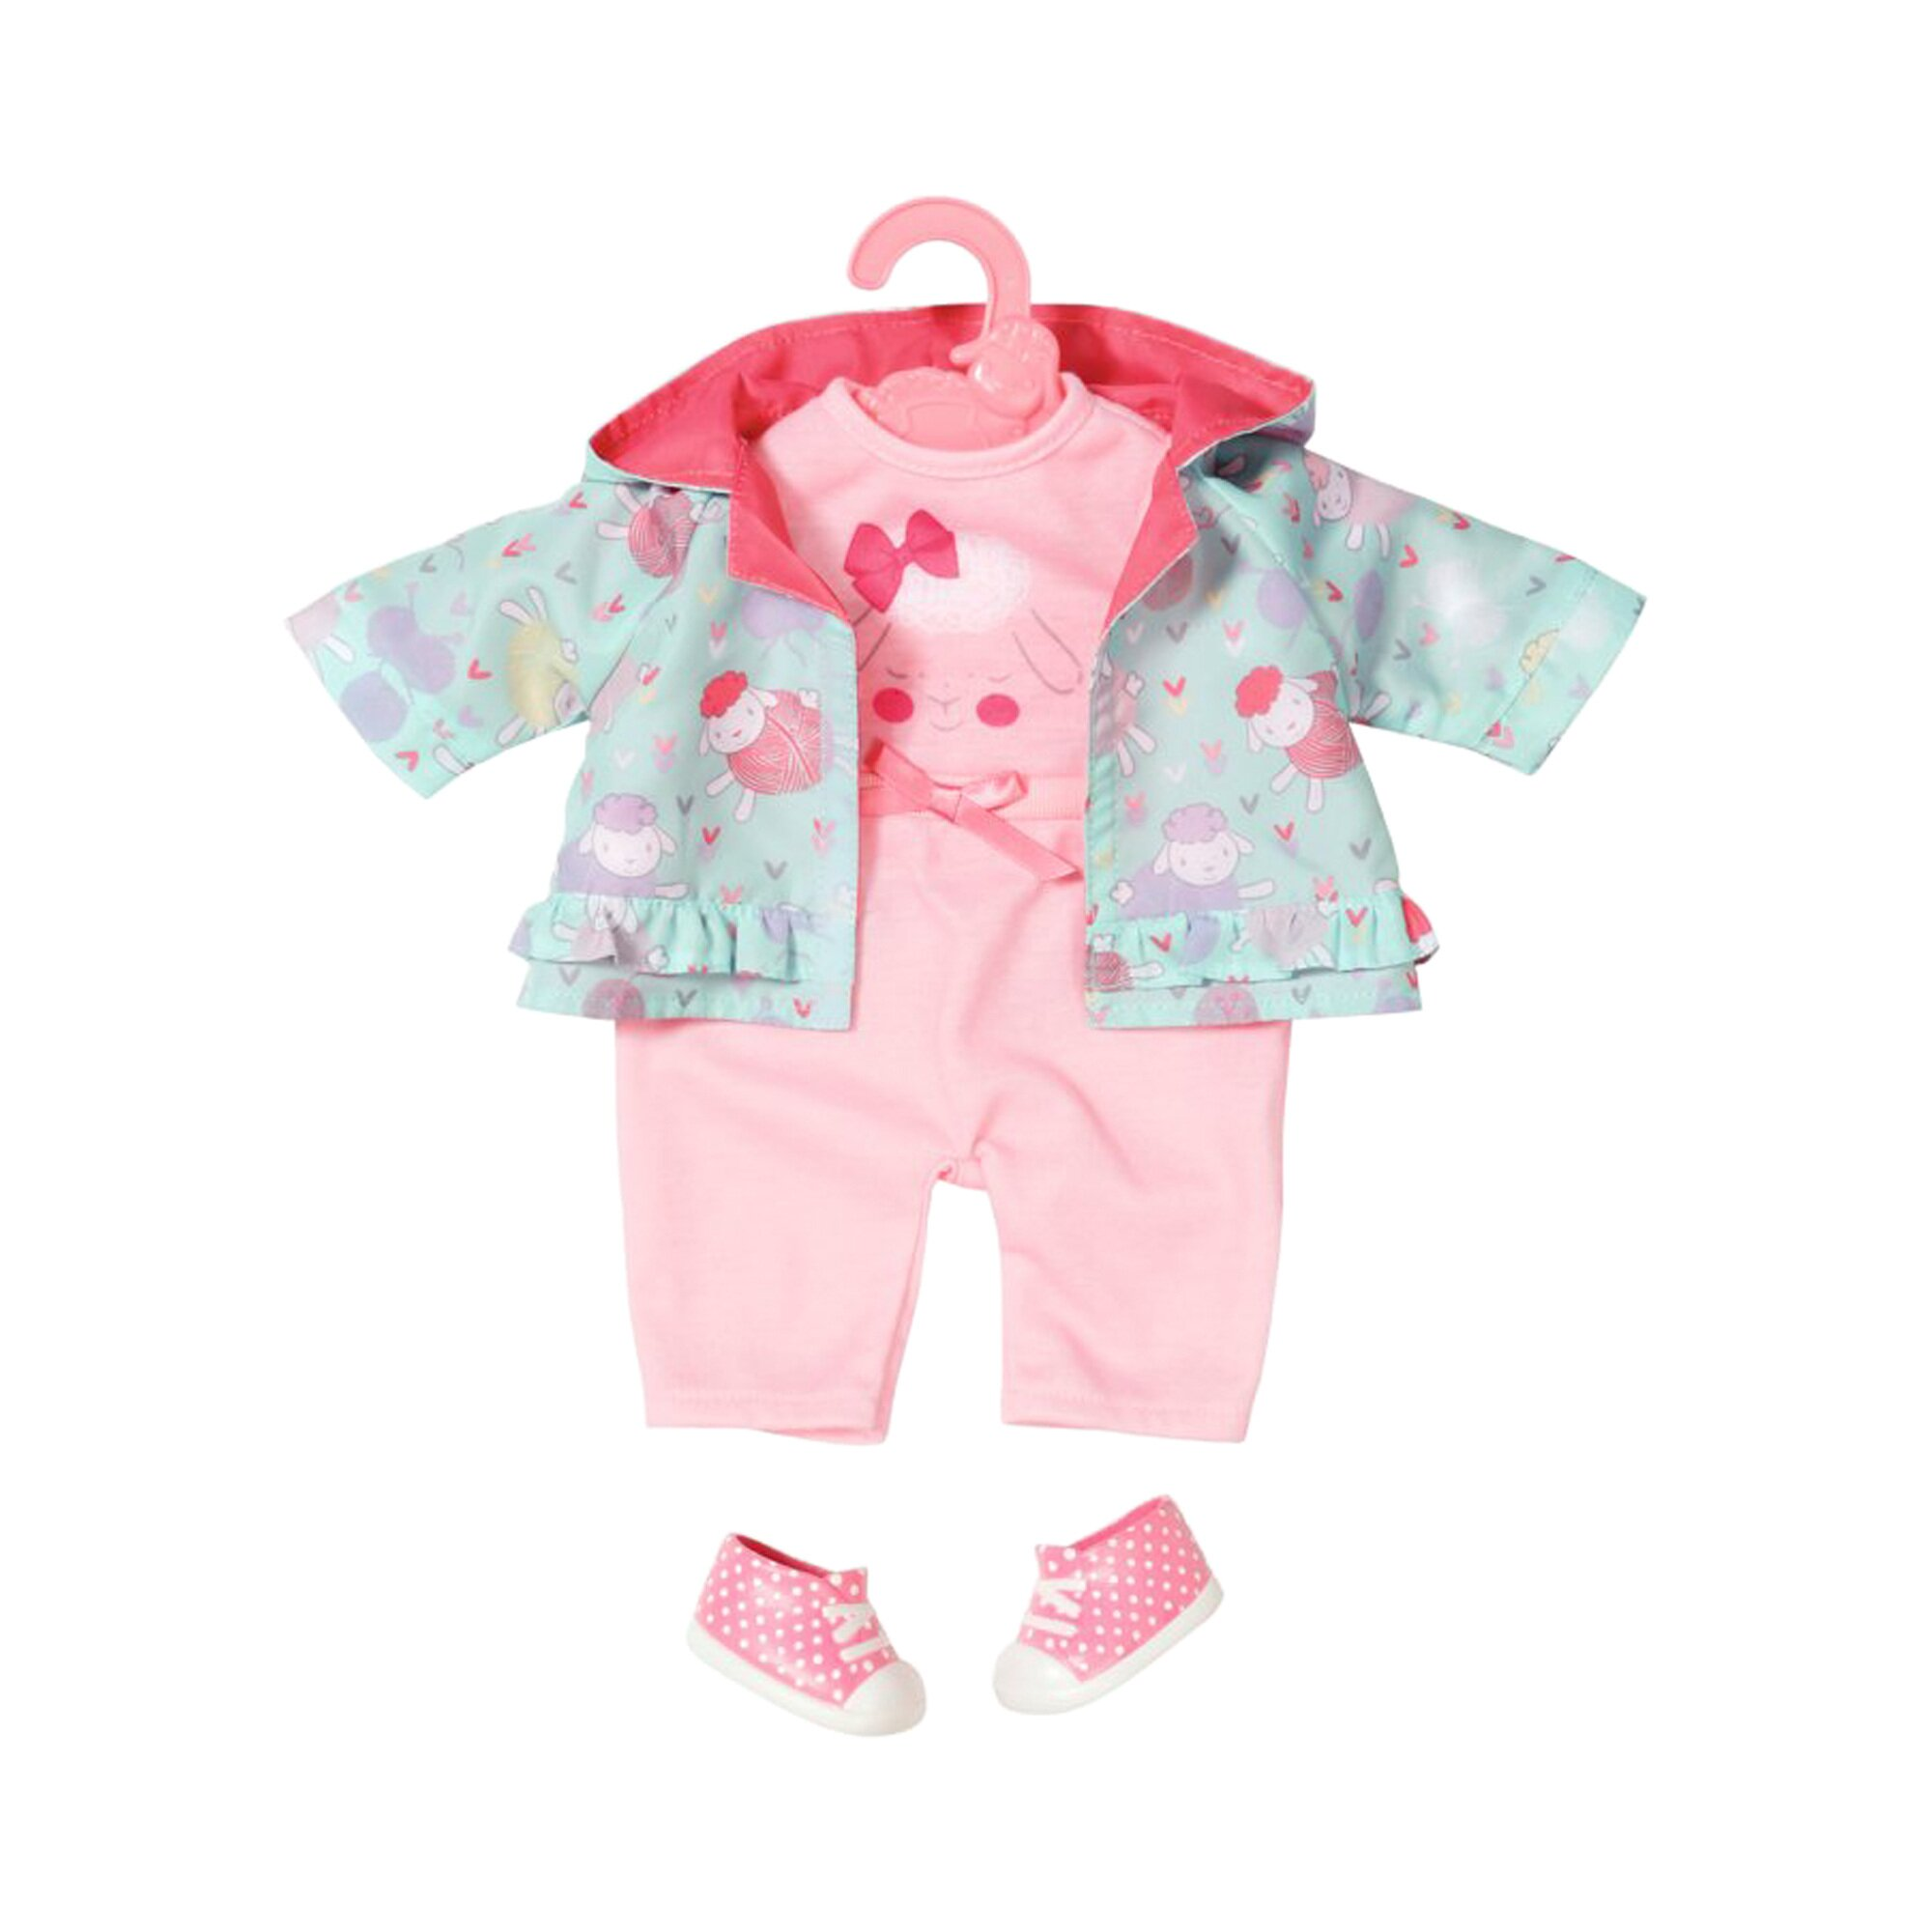 baby-annabell-puppen-outfit-kleines-spieloutfit-36cm